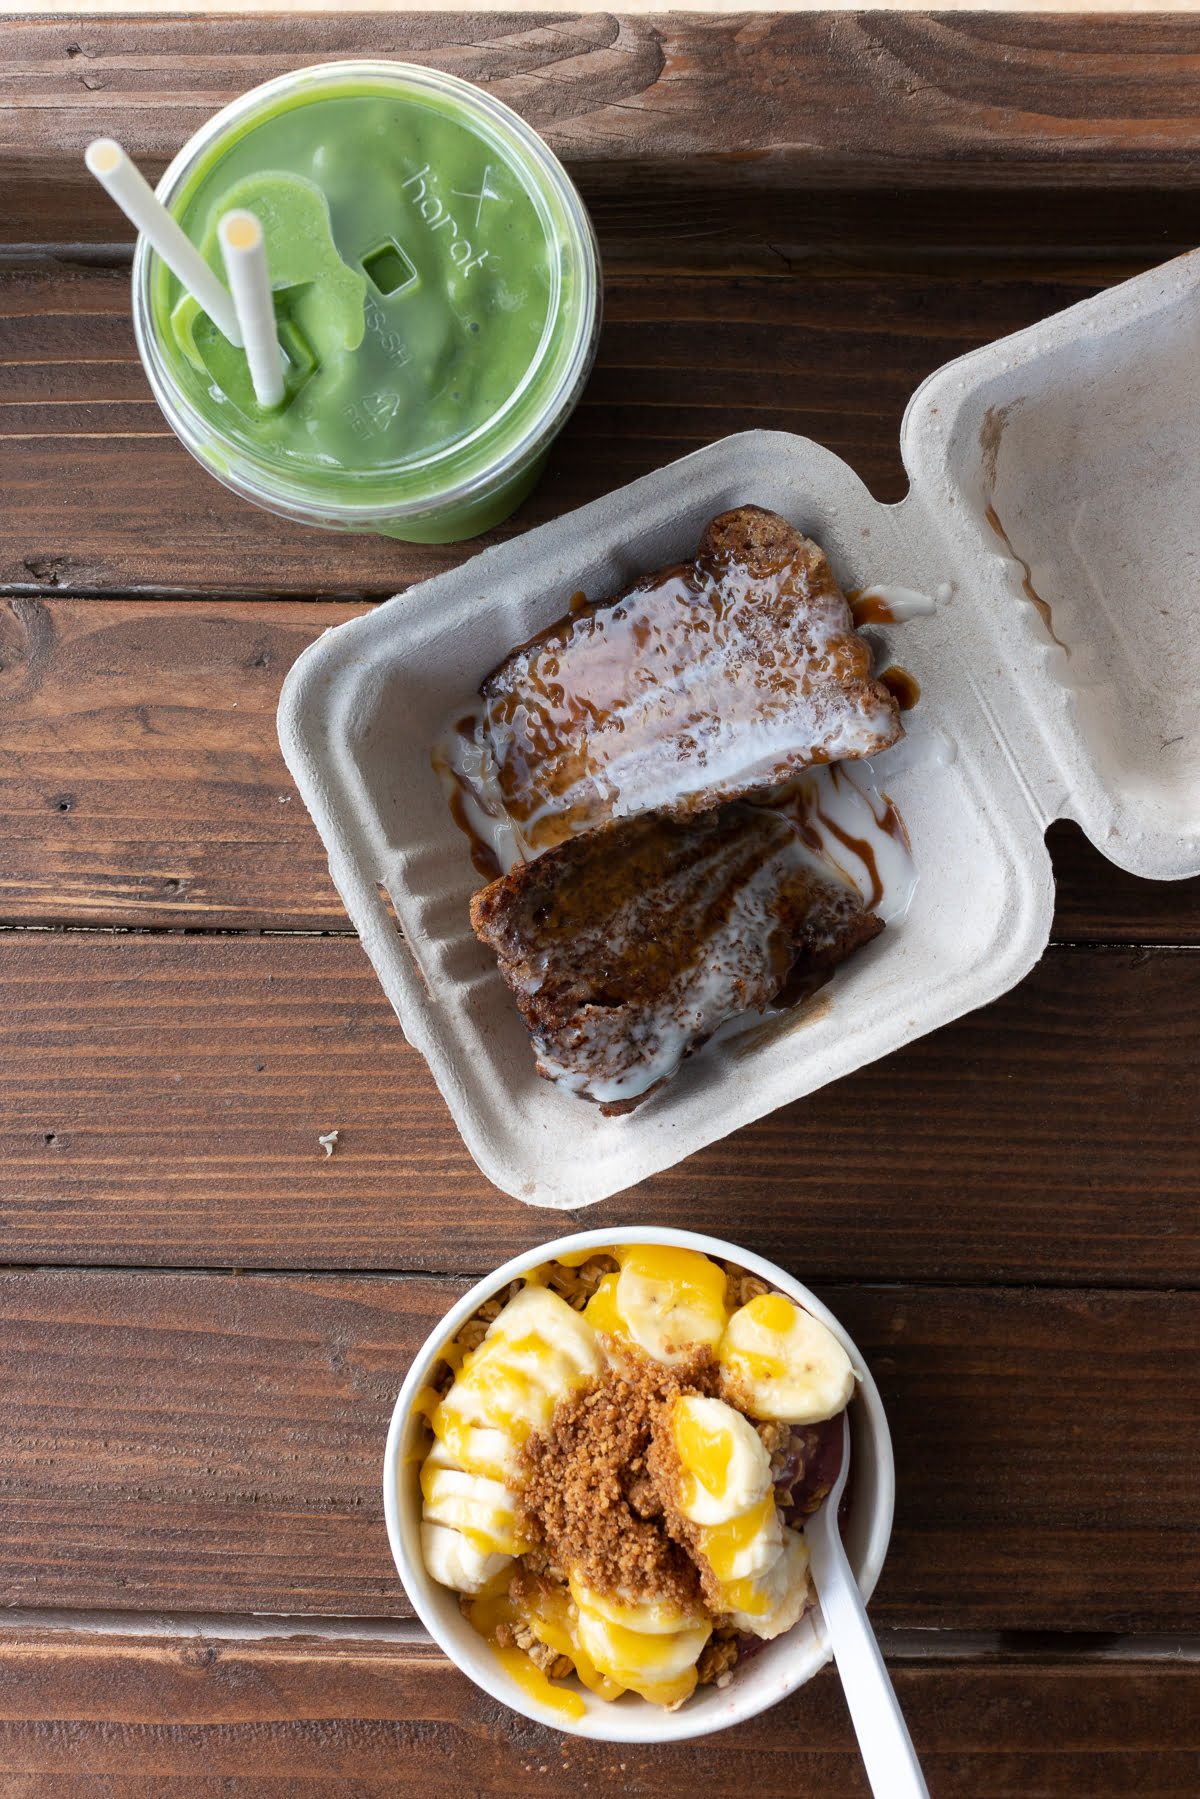 Overhead shot of açaí bowl, grilled banana bread, and green smoothie from Kahuku Farms.